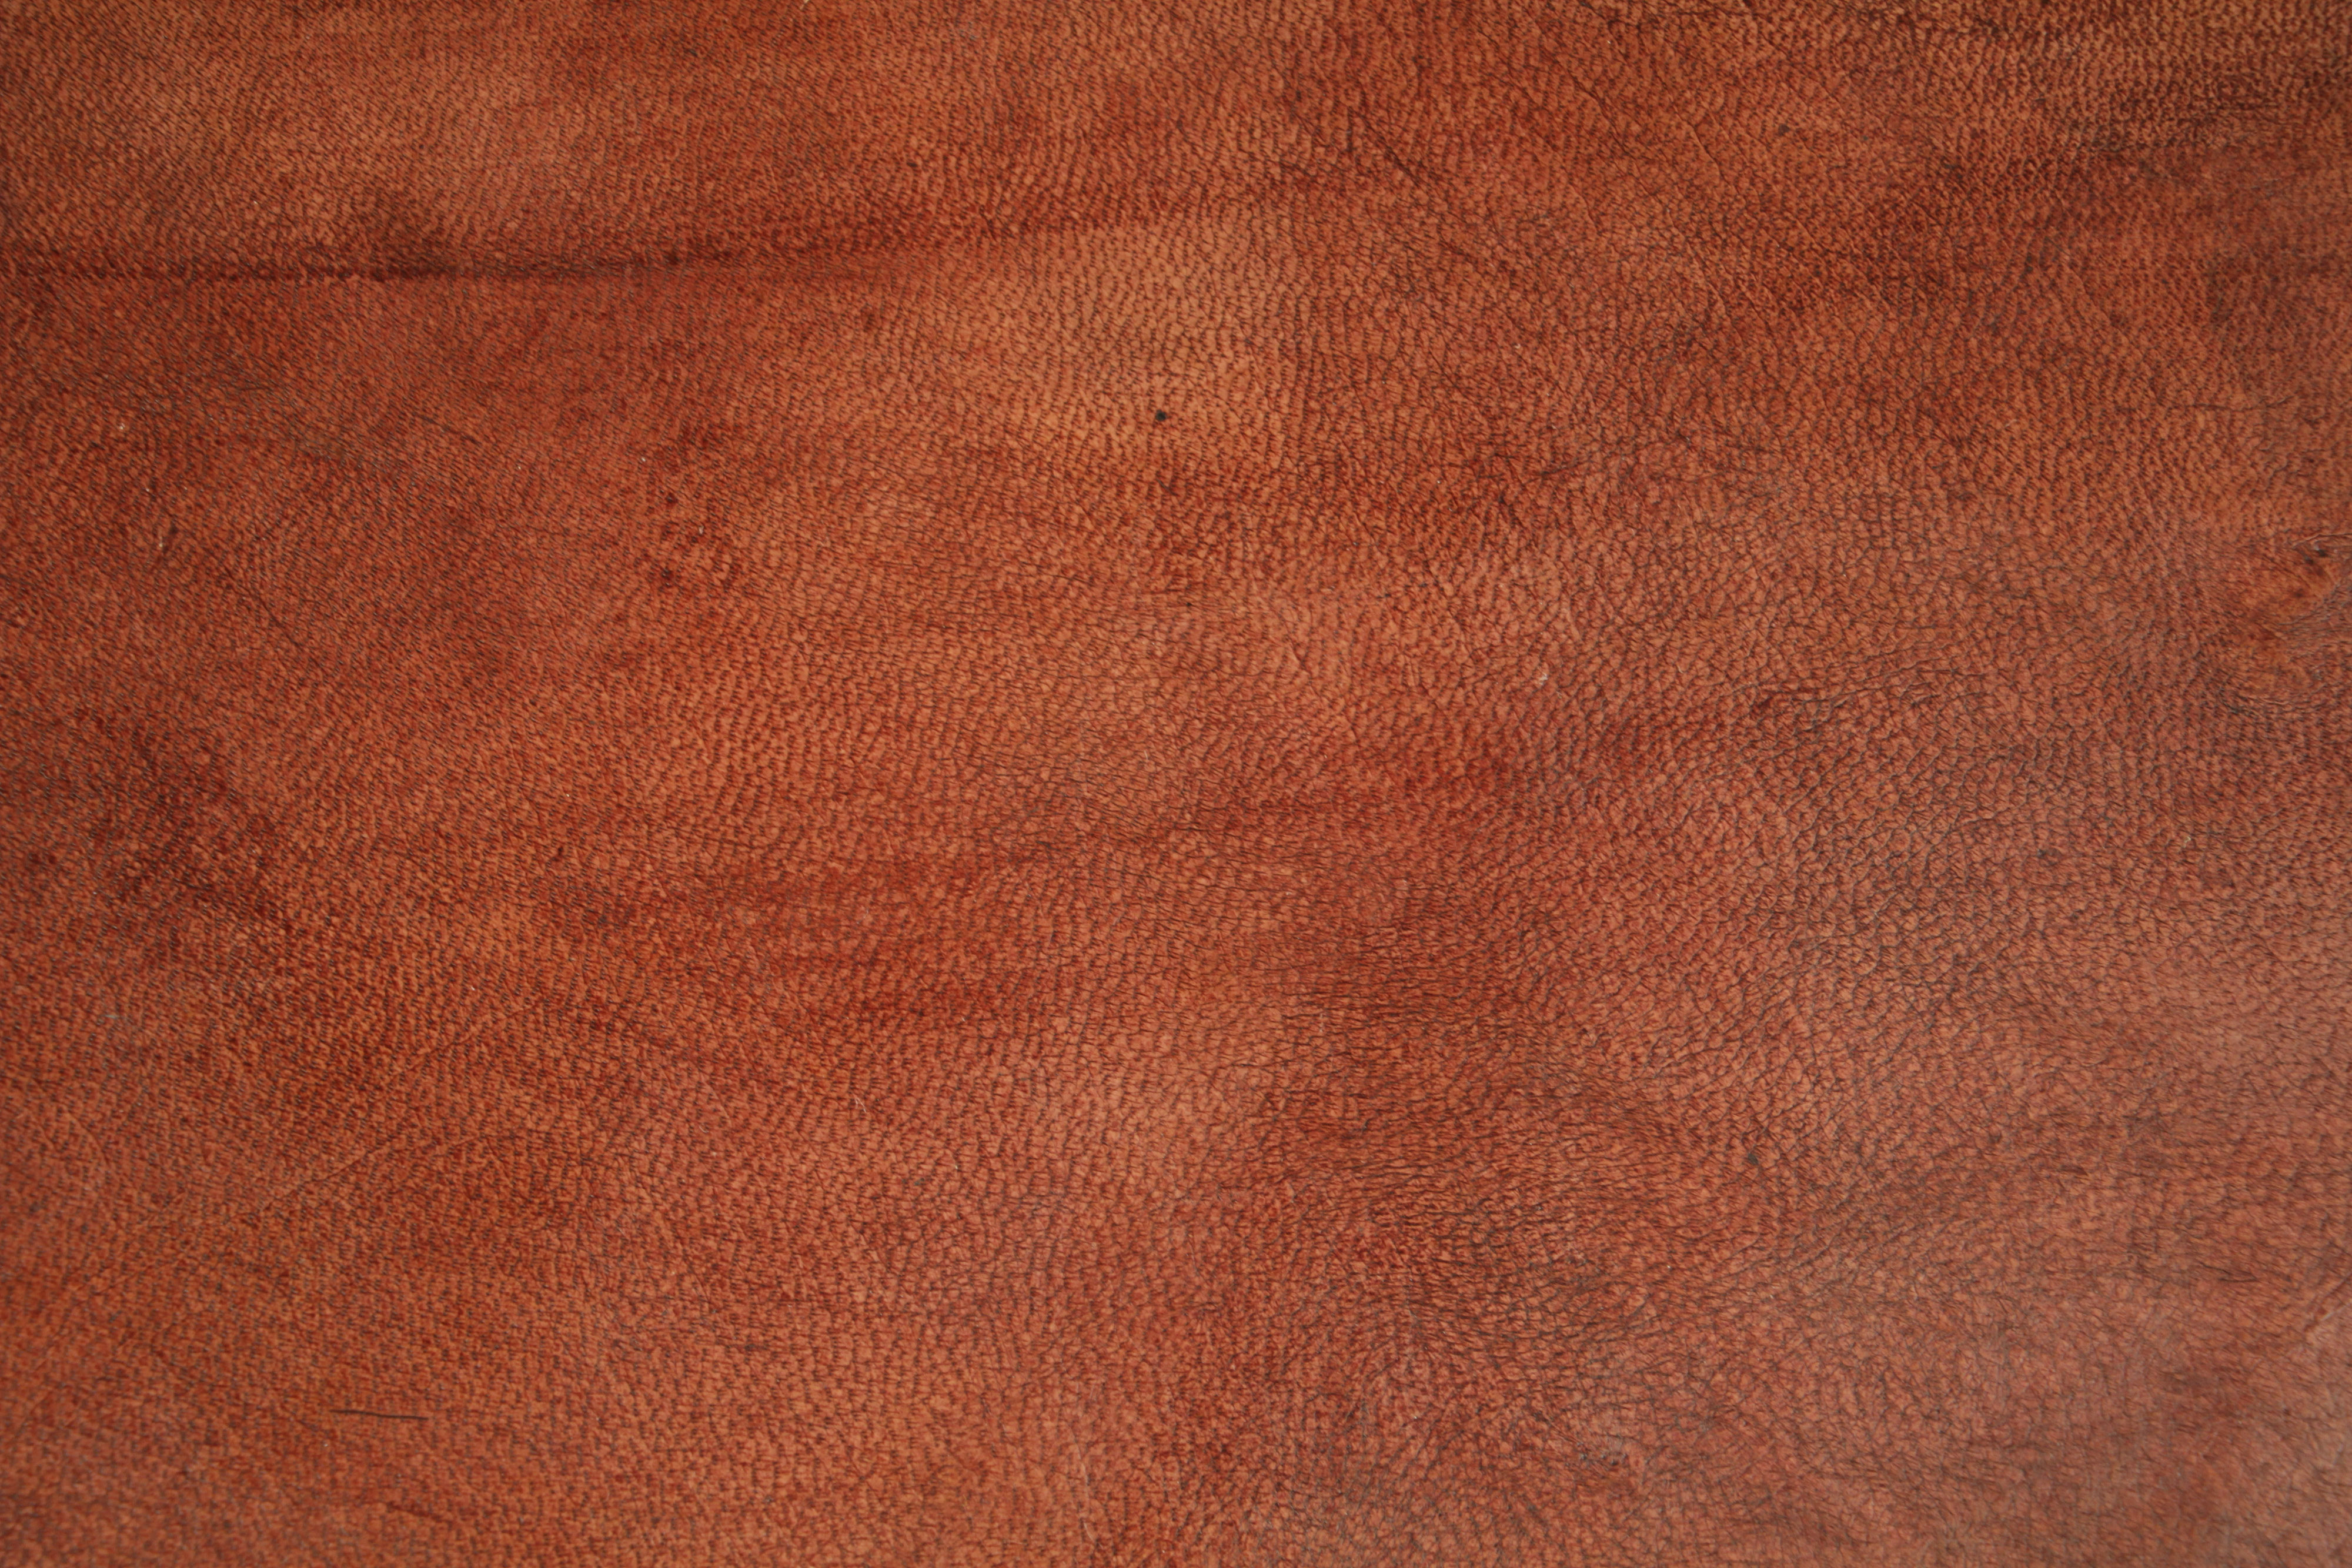 brown leather texture genuine even skin pattern wallpaper - TextureX ... for Brown Leather Texture Hd  111ane